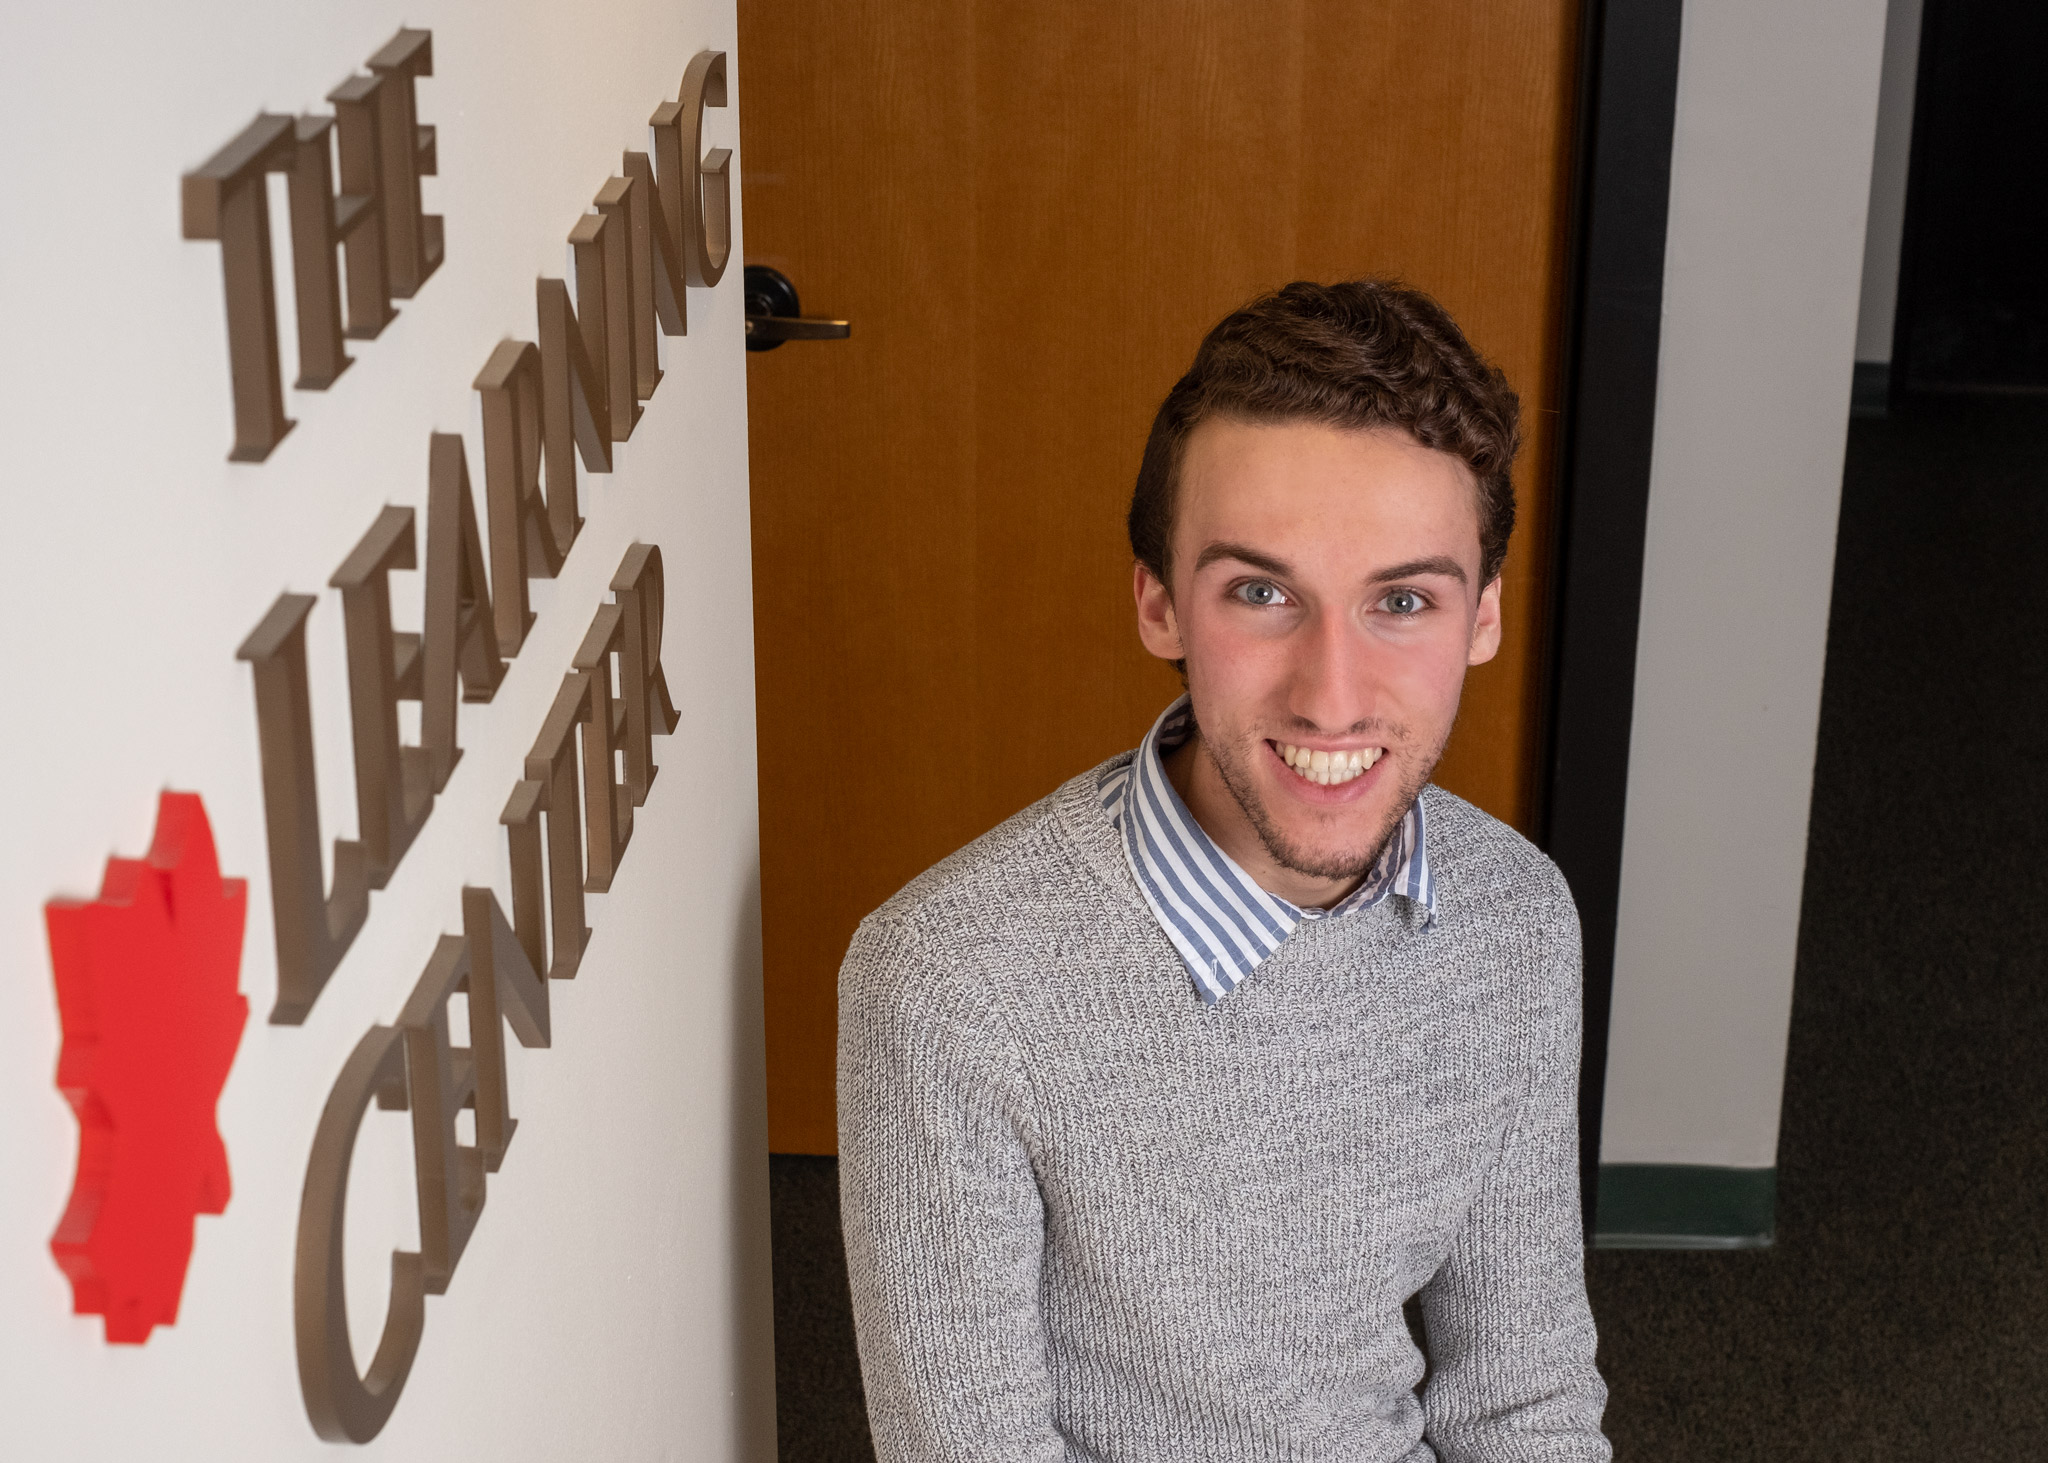 Josh Huffman completed Early College at CCV and is now finishing his sophomore year at UVM.